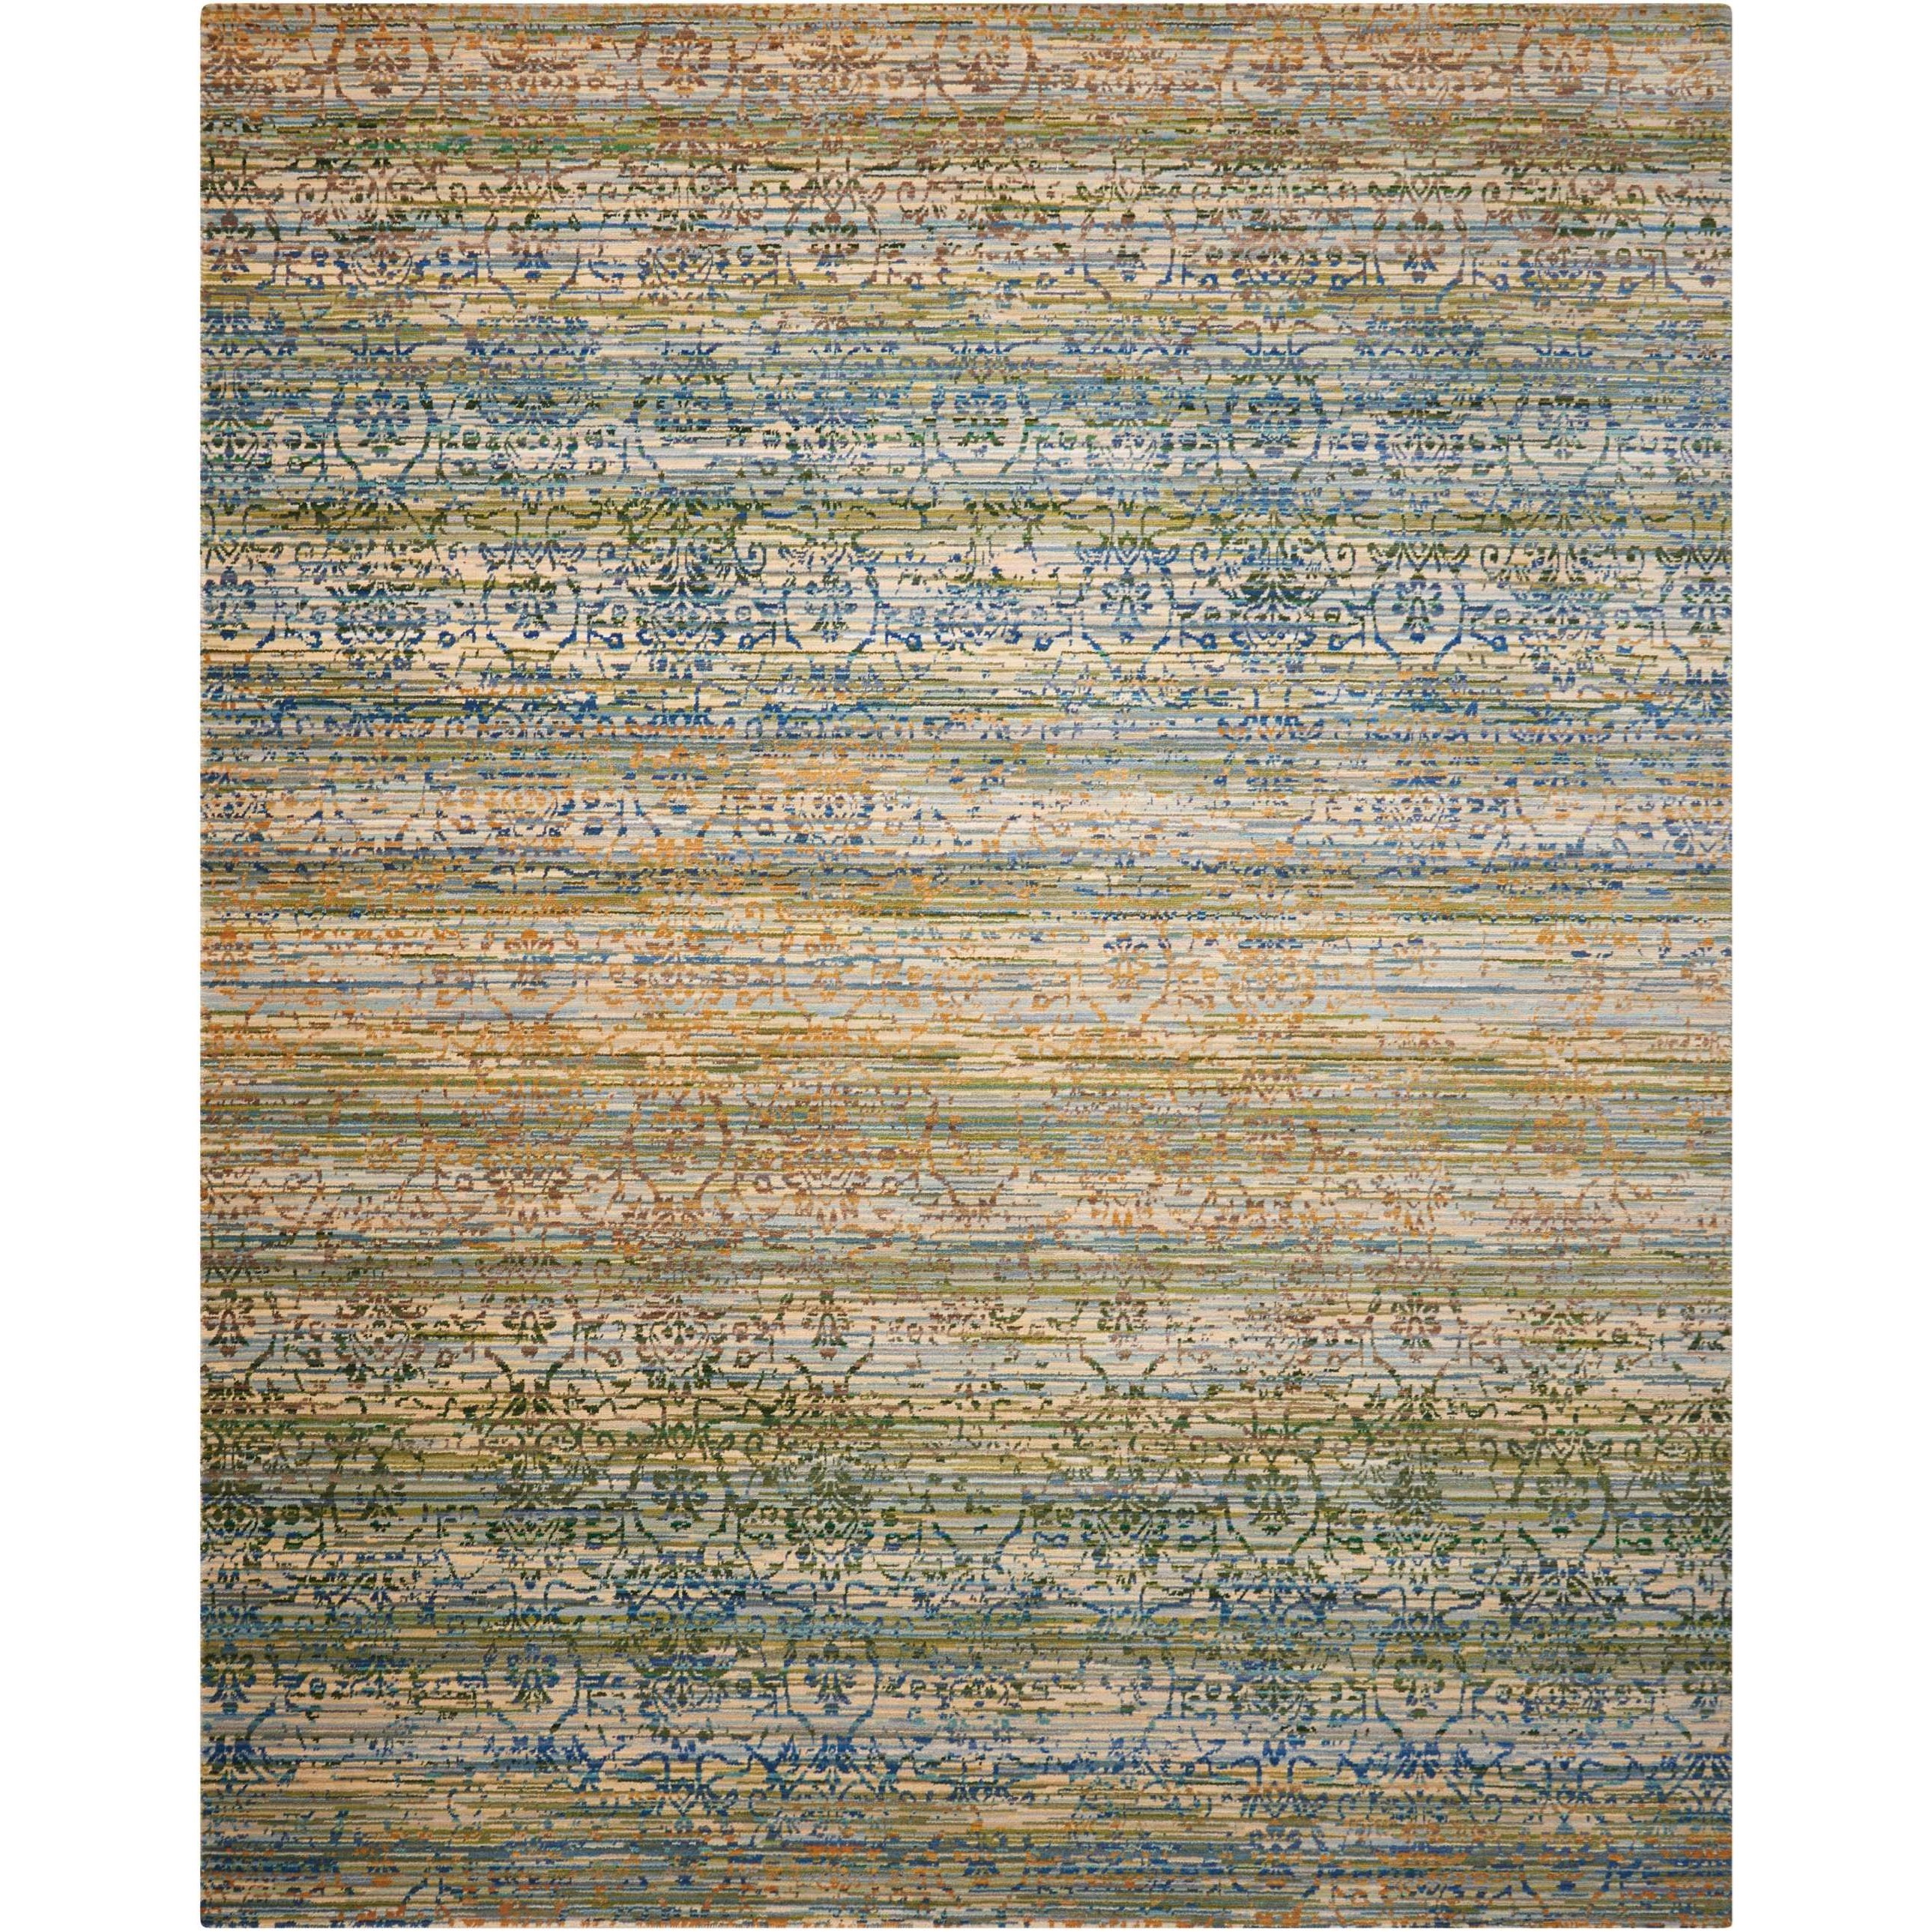 """Rhapsody 5'6"""" x 8' Beige Blue Rectangle Rug by Nourison at Home Collections Furniture"""